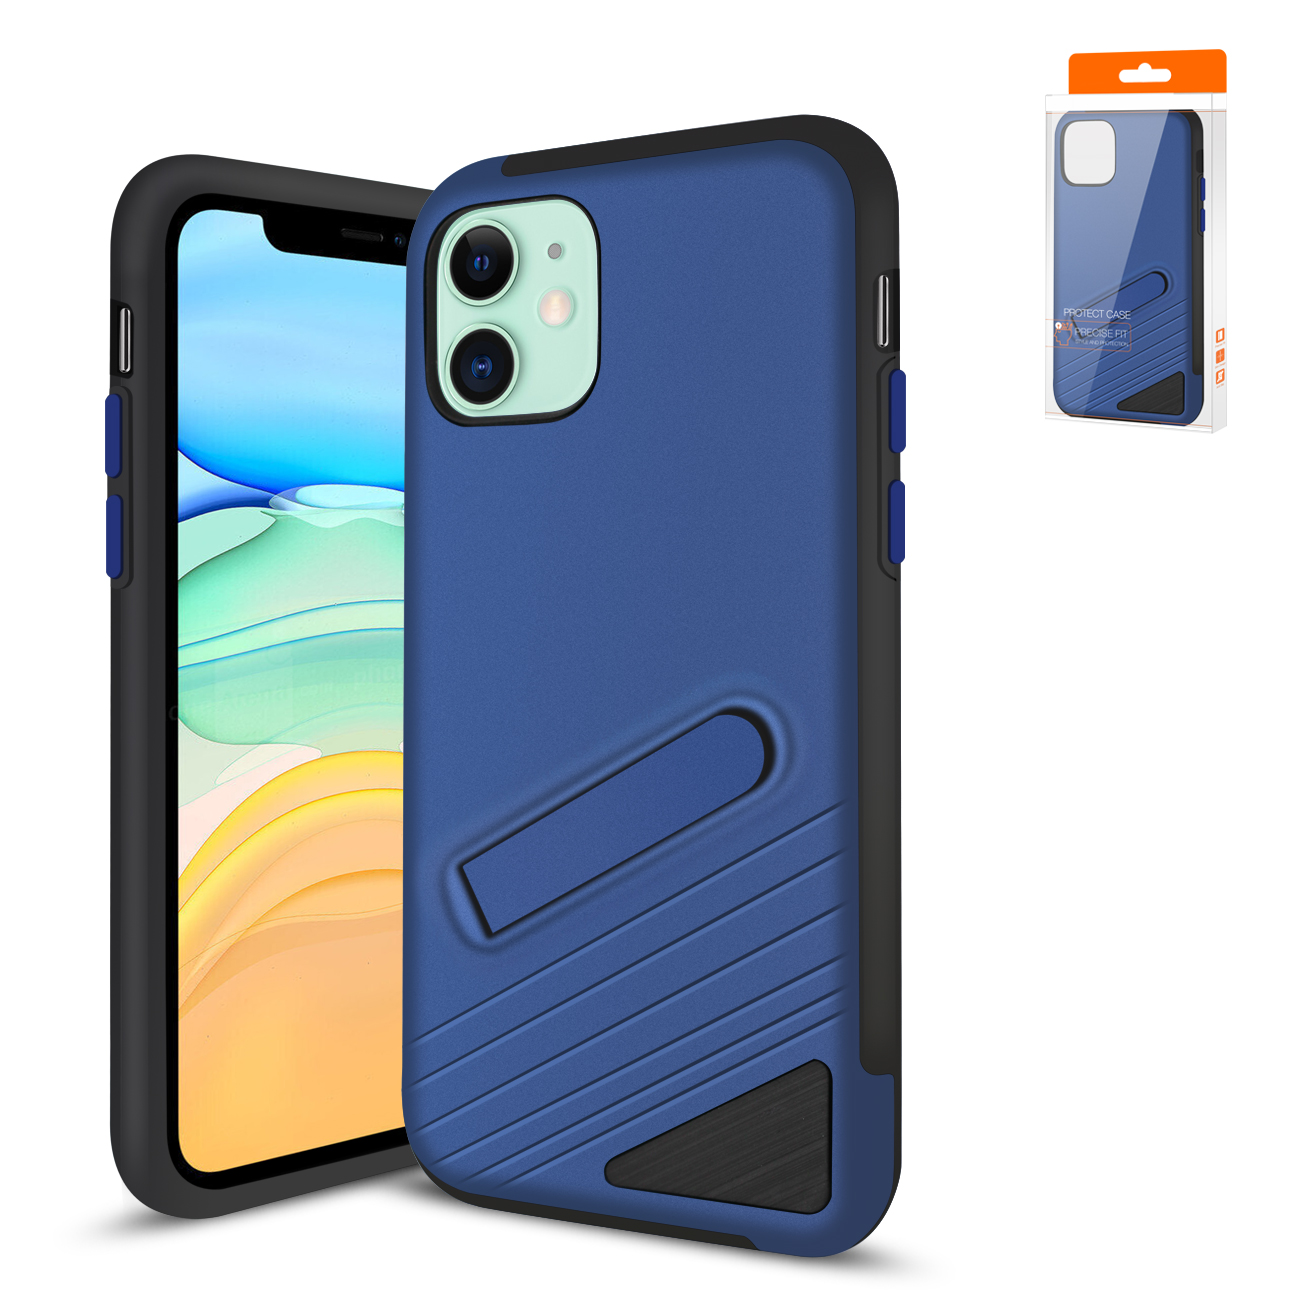 Reiko Apple iPhone 11 Armor Cases In Navy